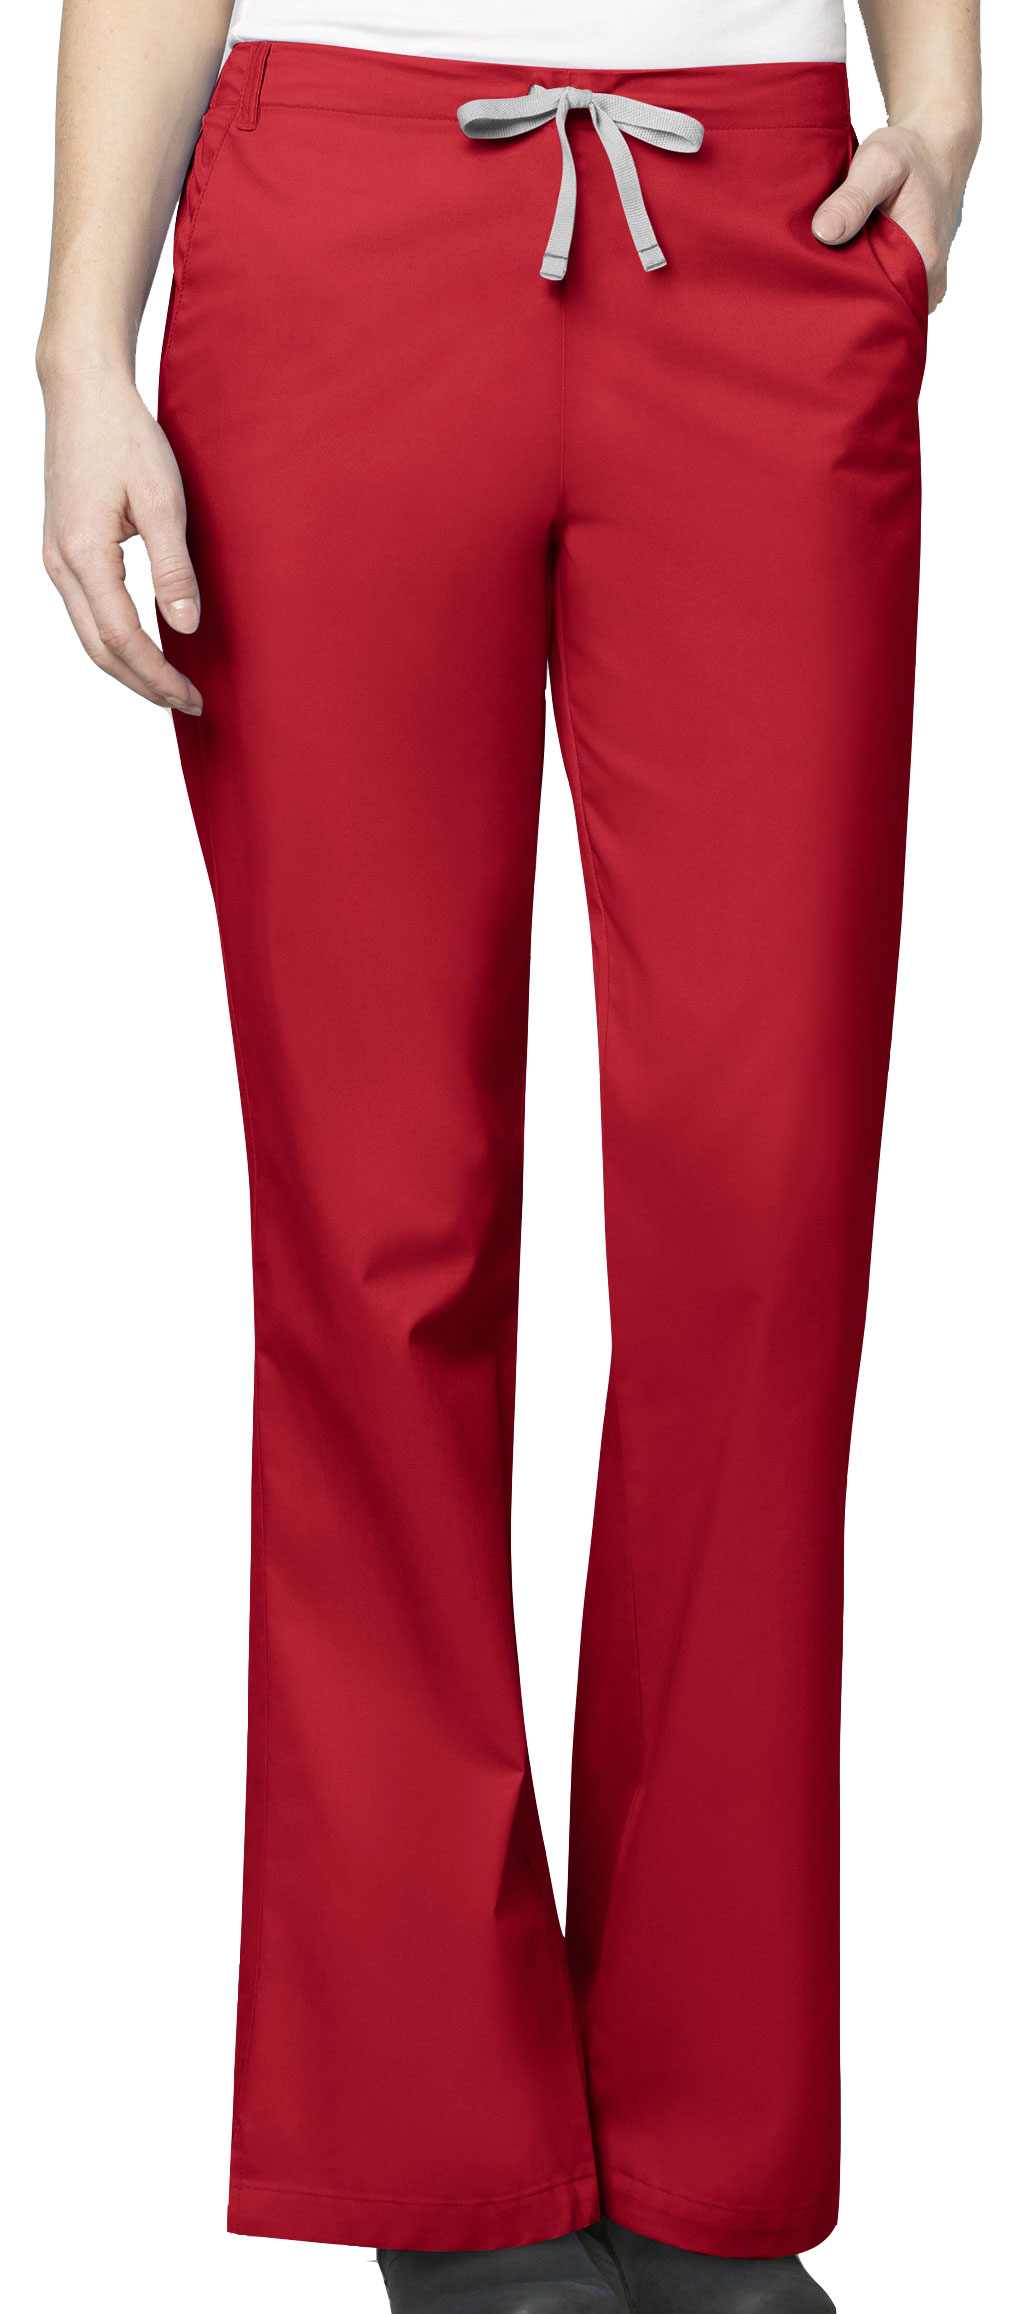 Womens Flare Leg Pant by WonderWink�